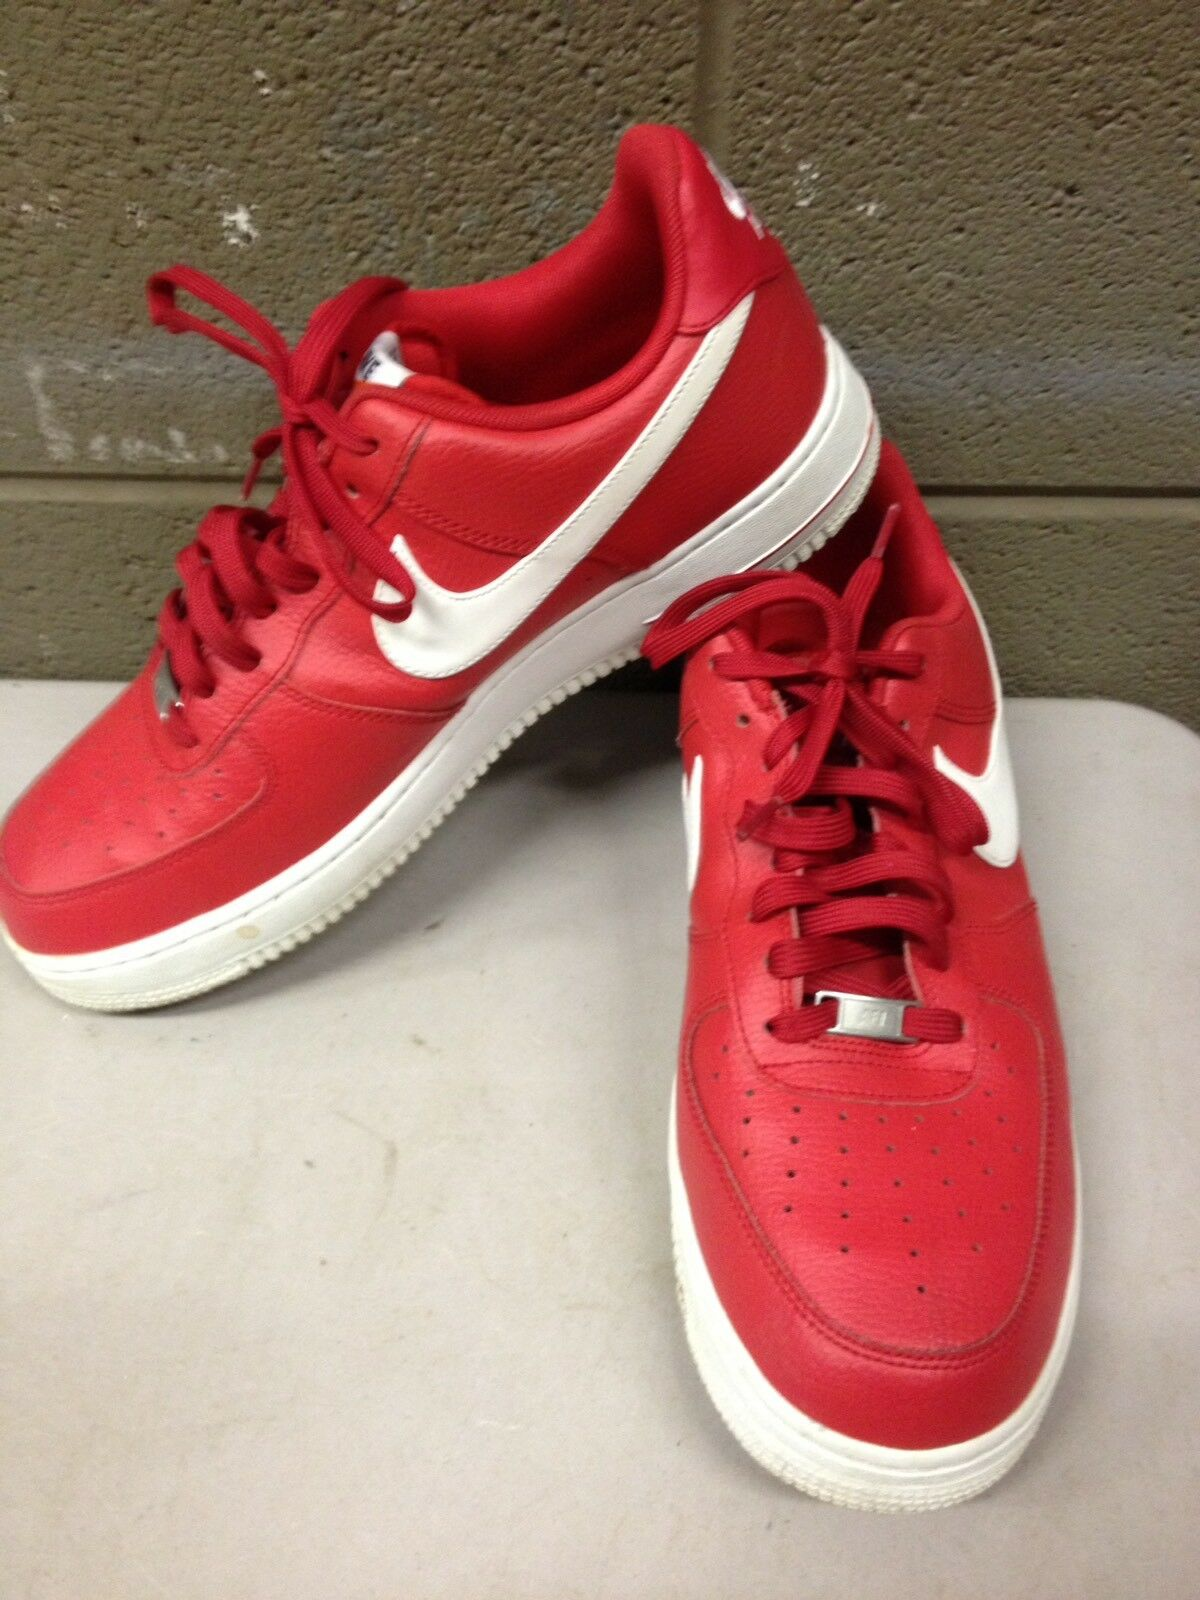 Nike Air Force 1 Low University Red White Supreme 488298-624 Size 11.5 Shoes AF1